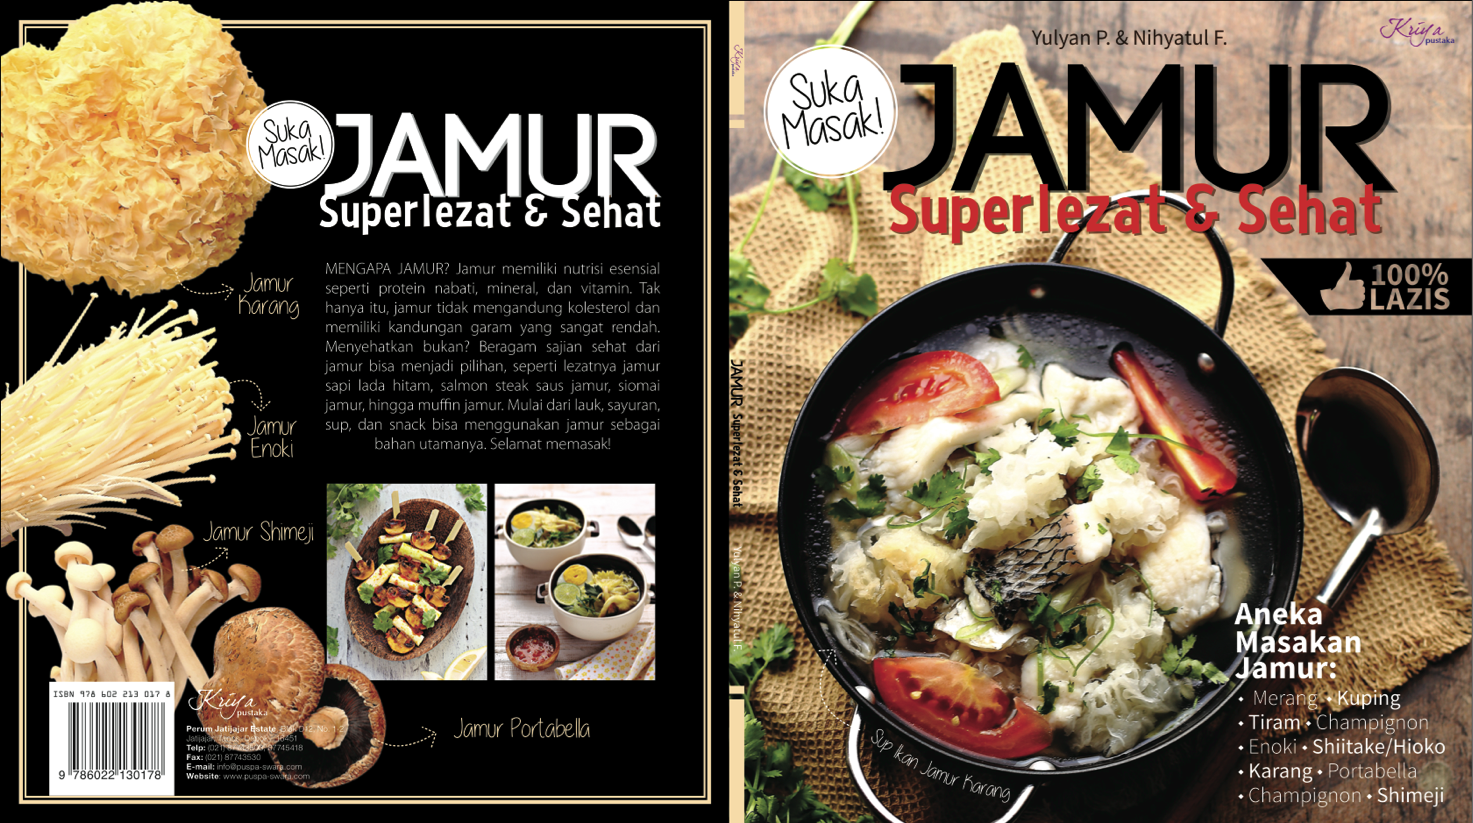 Book Cover (July 2014) Jamur